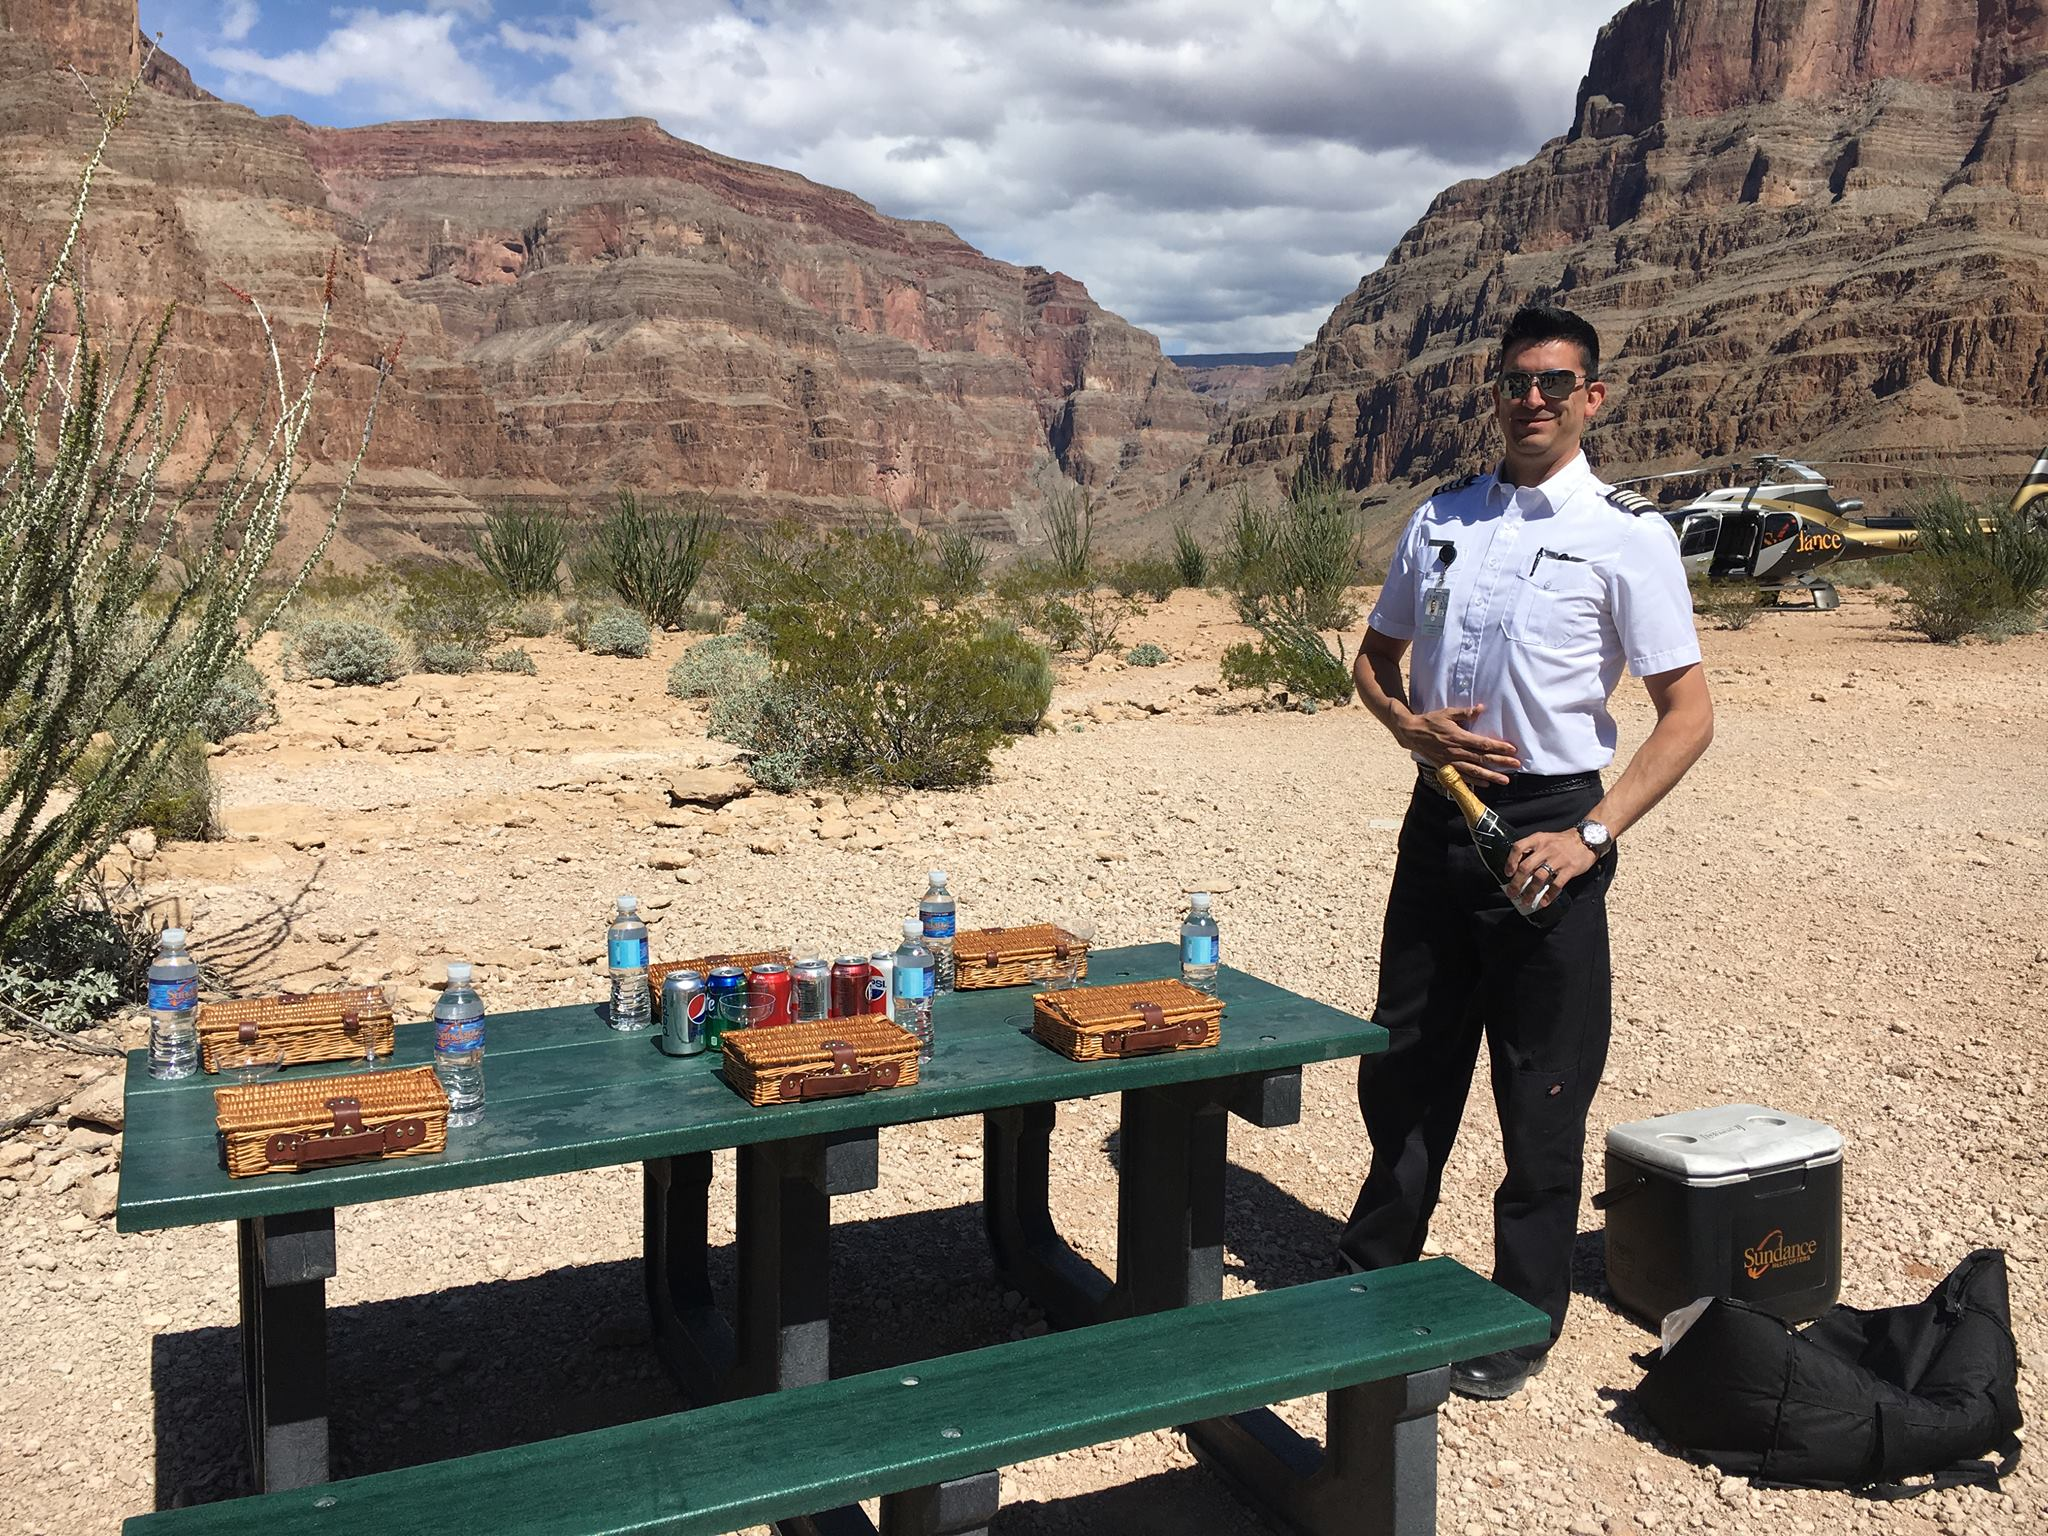 Sudance Helicopters Grand Canyon Picnic